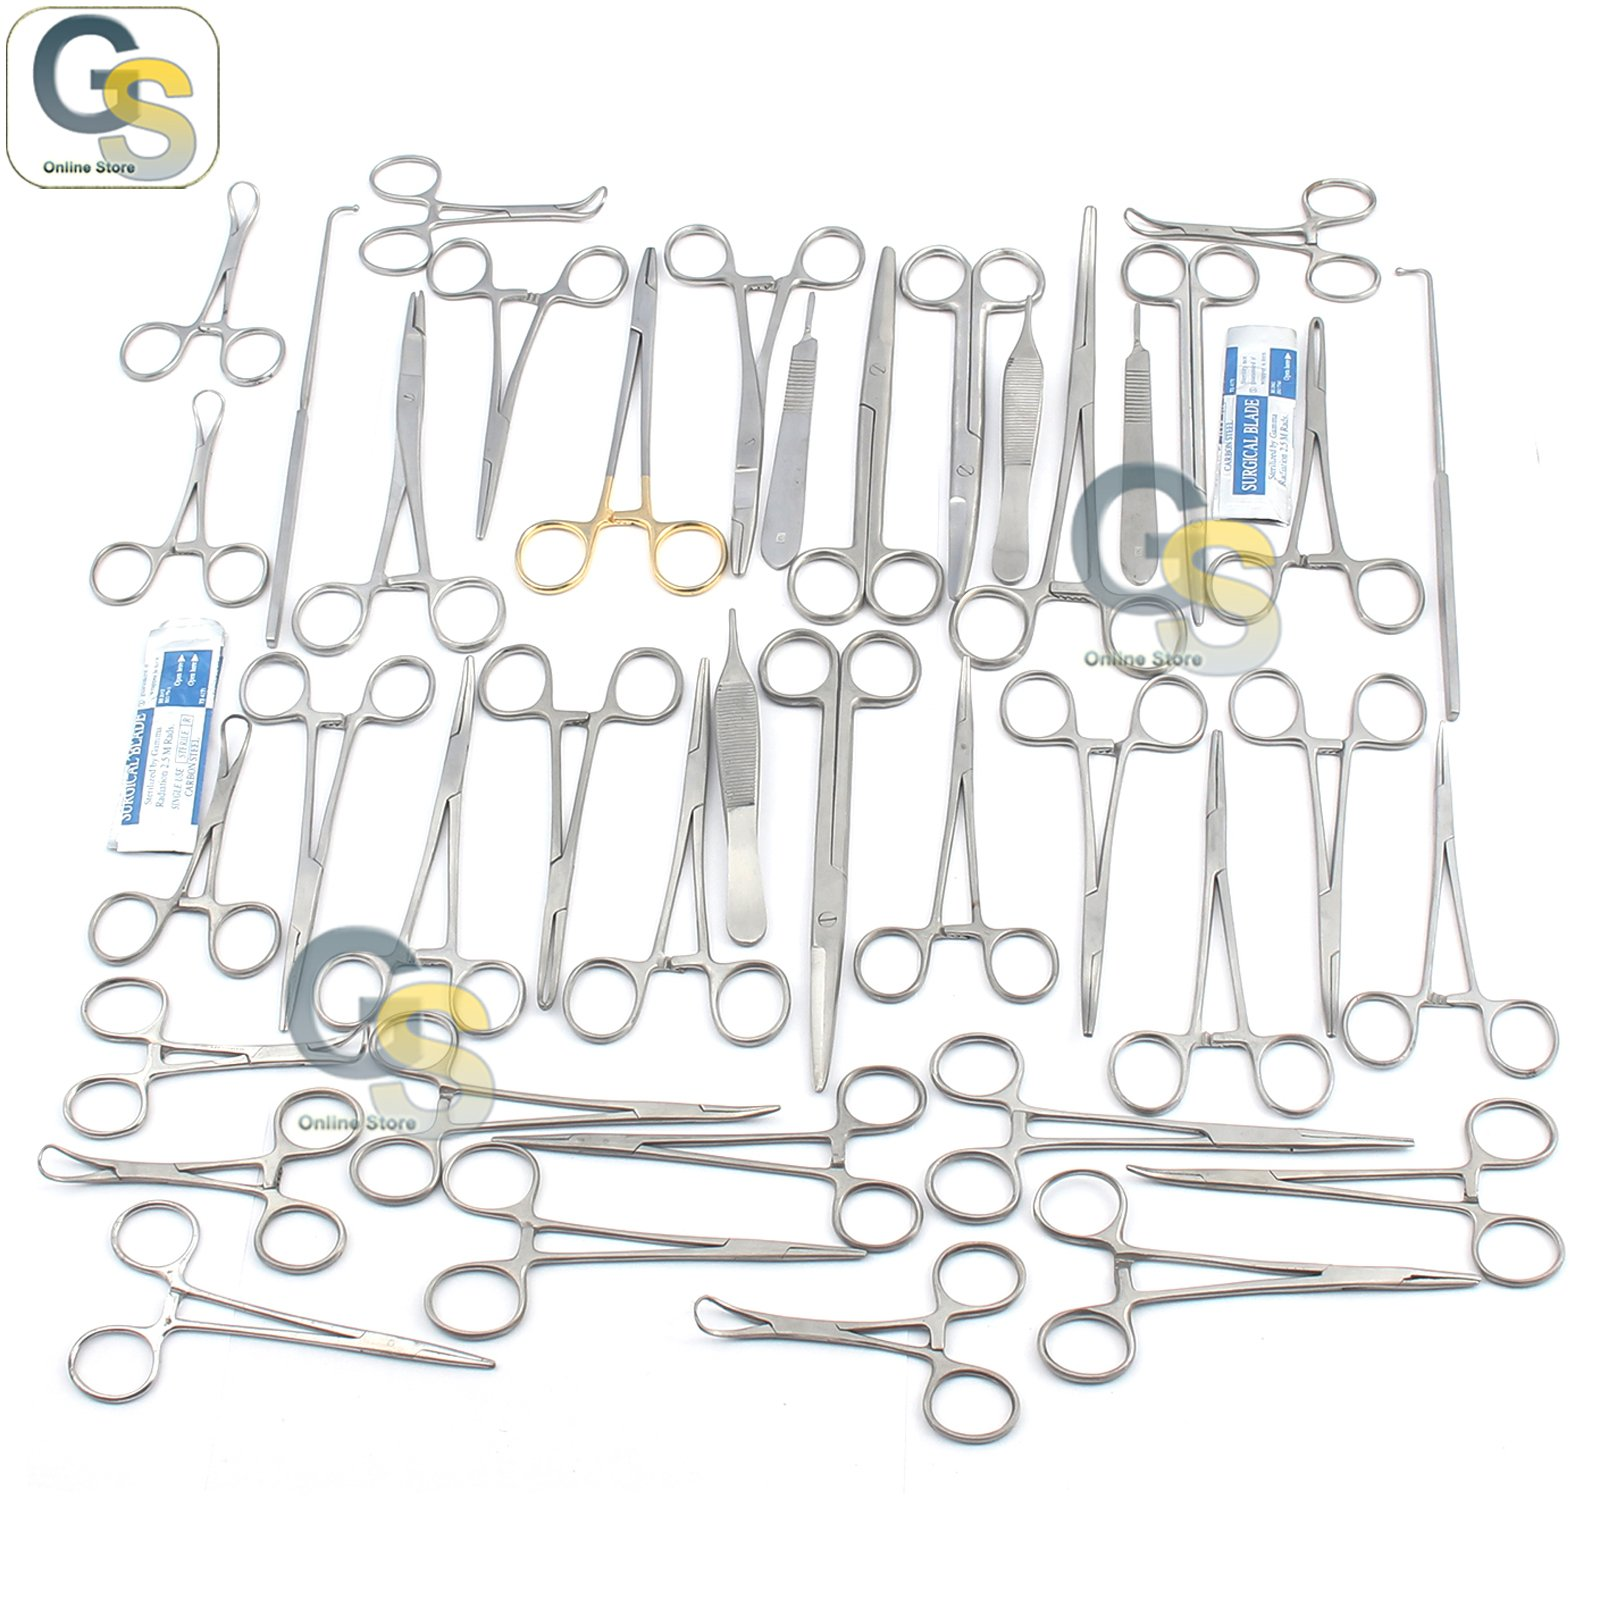 G.S Feline + Canine Spay Pack 91 Piece Premium Stainless Steel Veterinary Set Best Quality by G.S ONLINE STORE